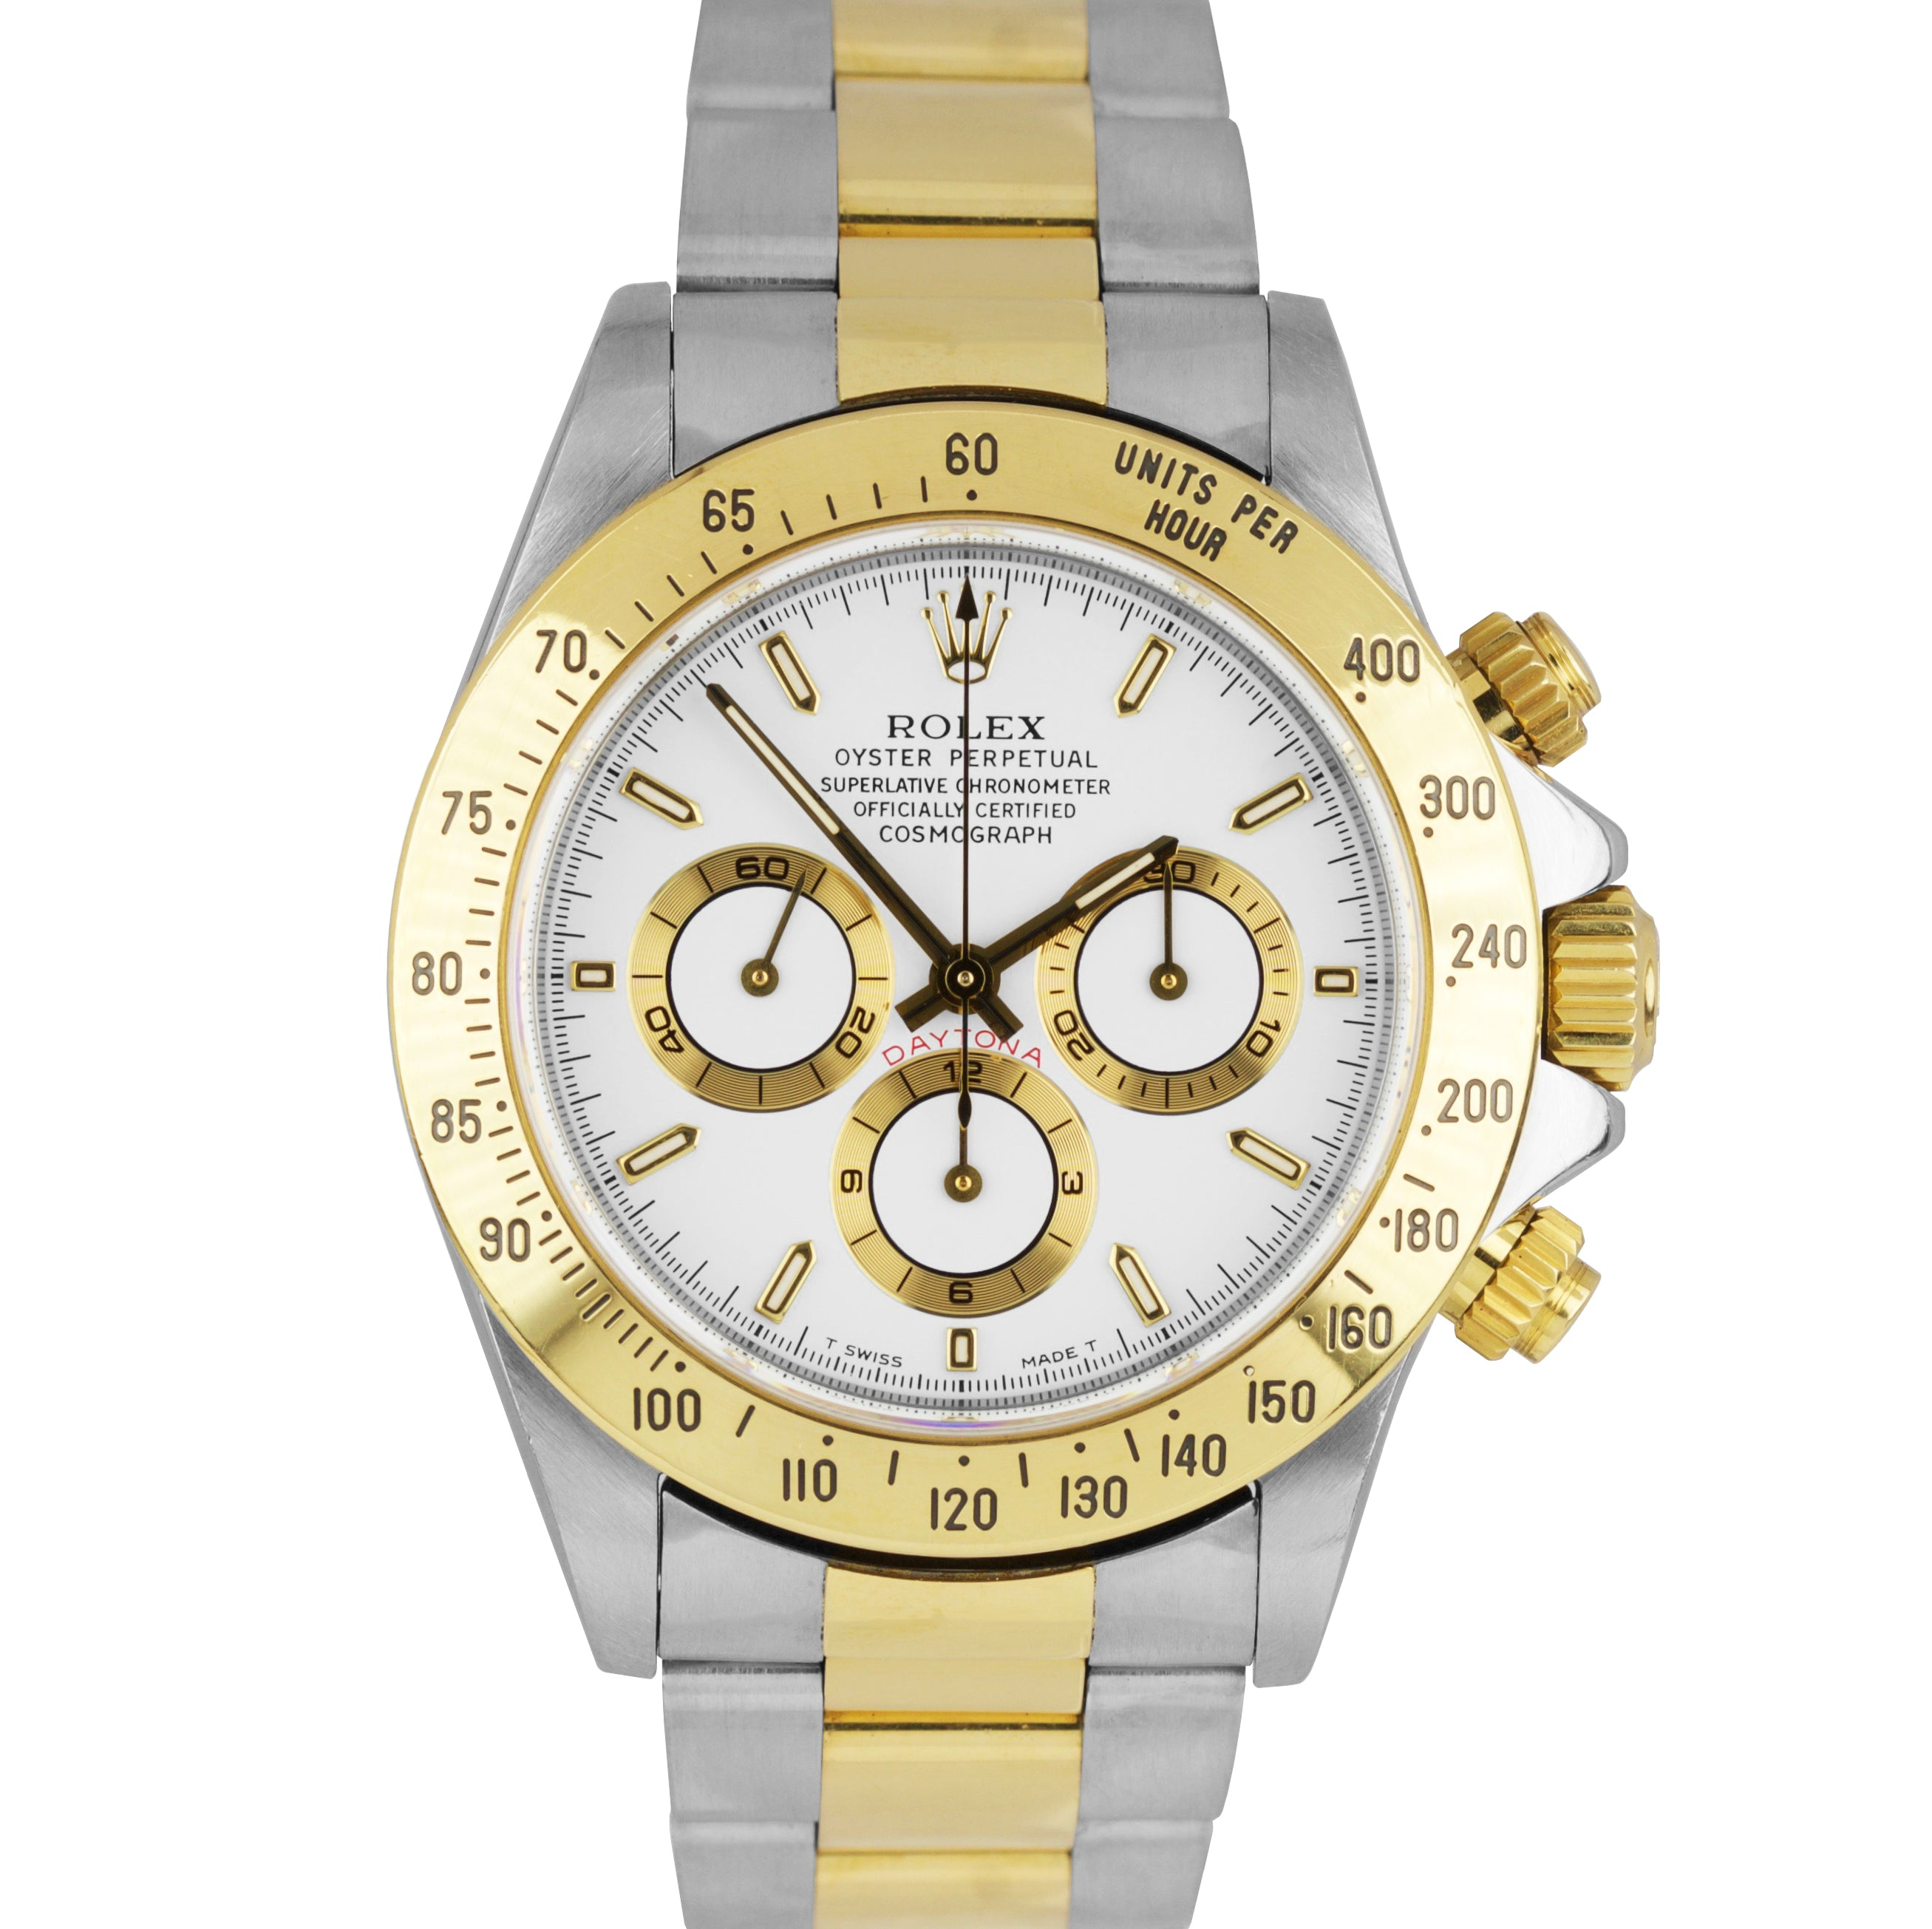 UNPOLISHED 1998 Rolex Daytona Cosmograph Zenith 16523 40mm Two-Tone White Watch